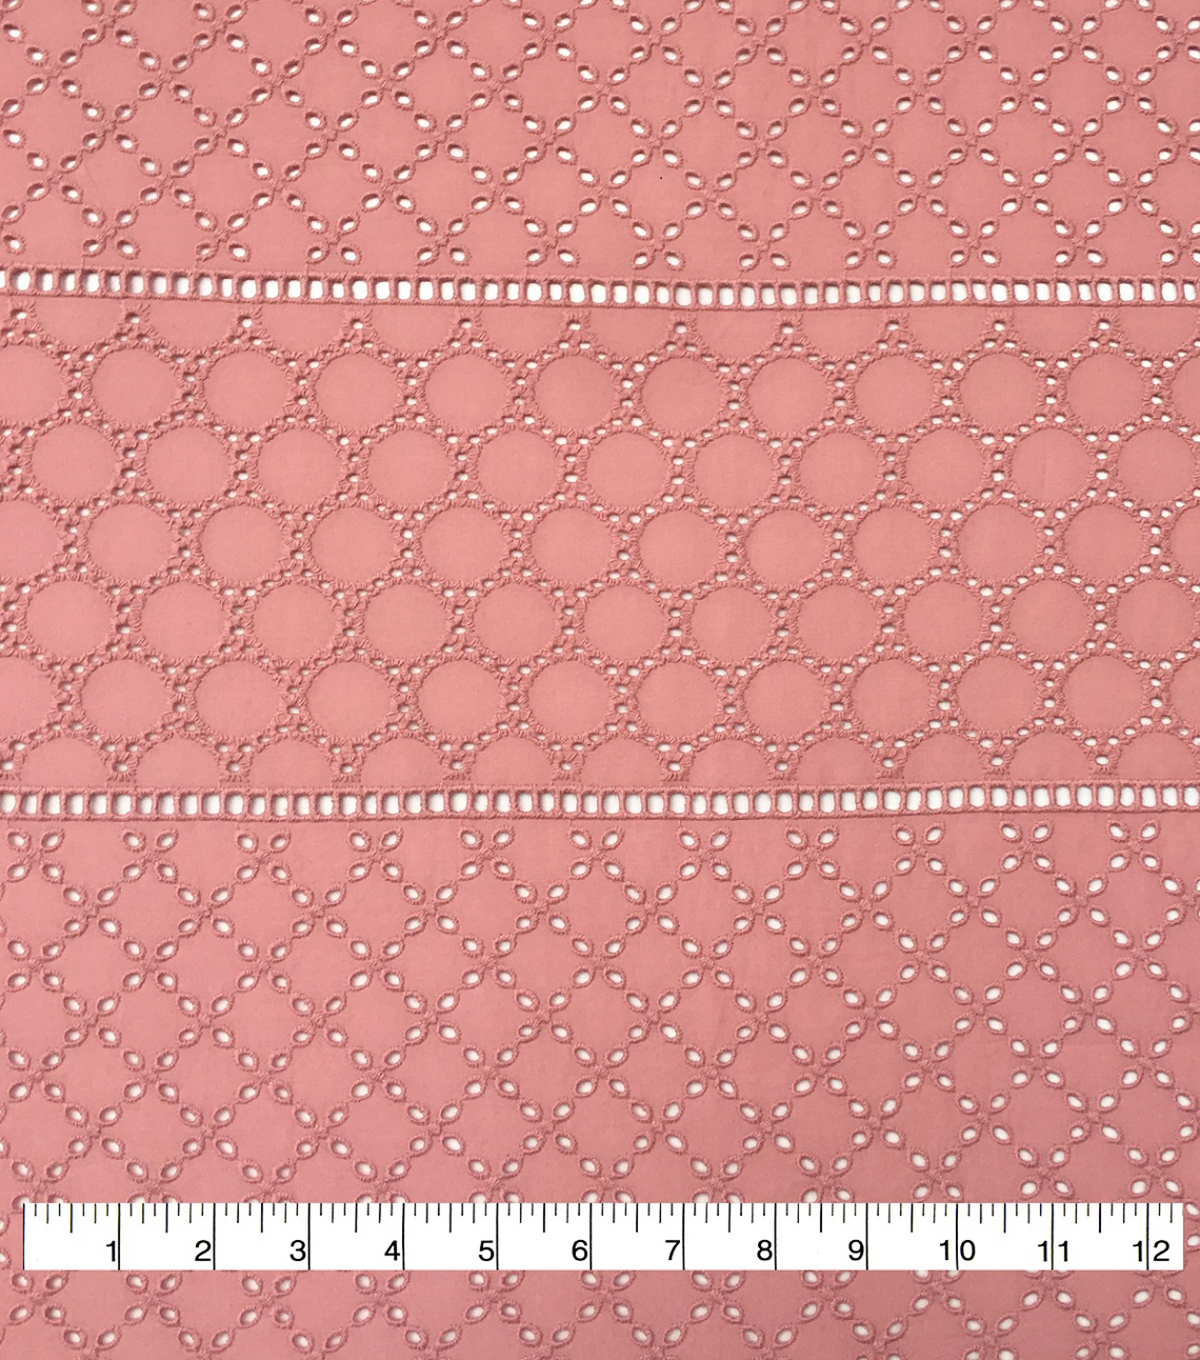 Homestead Linear Cotton Eyelet Fabric-Rose Tan